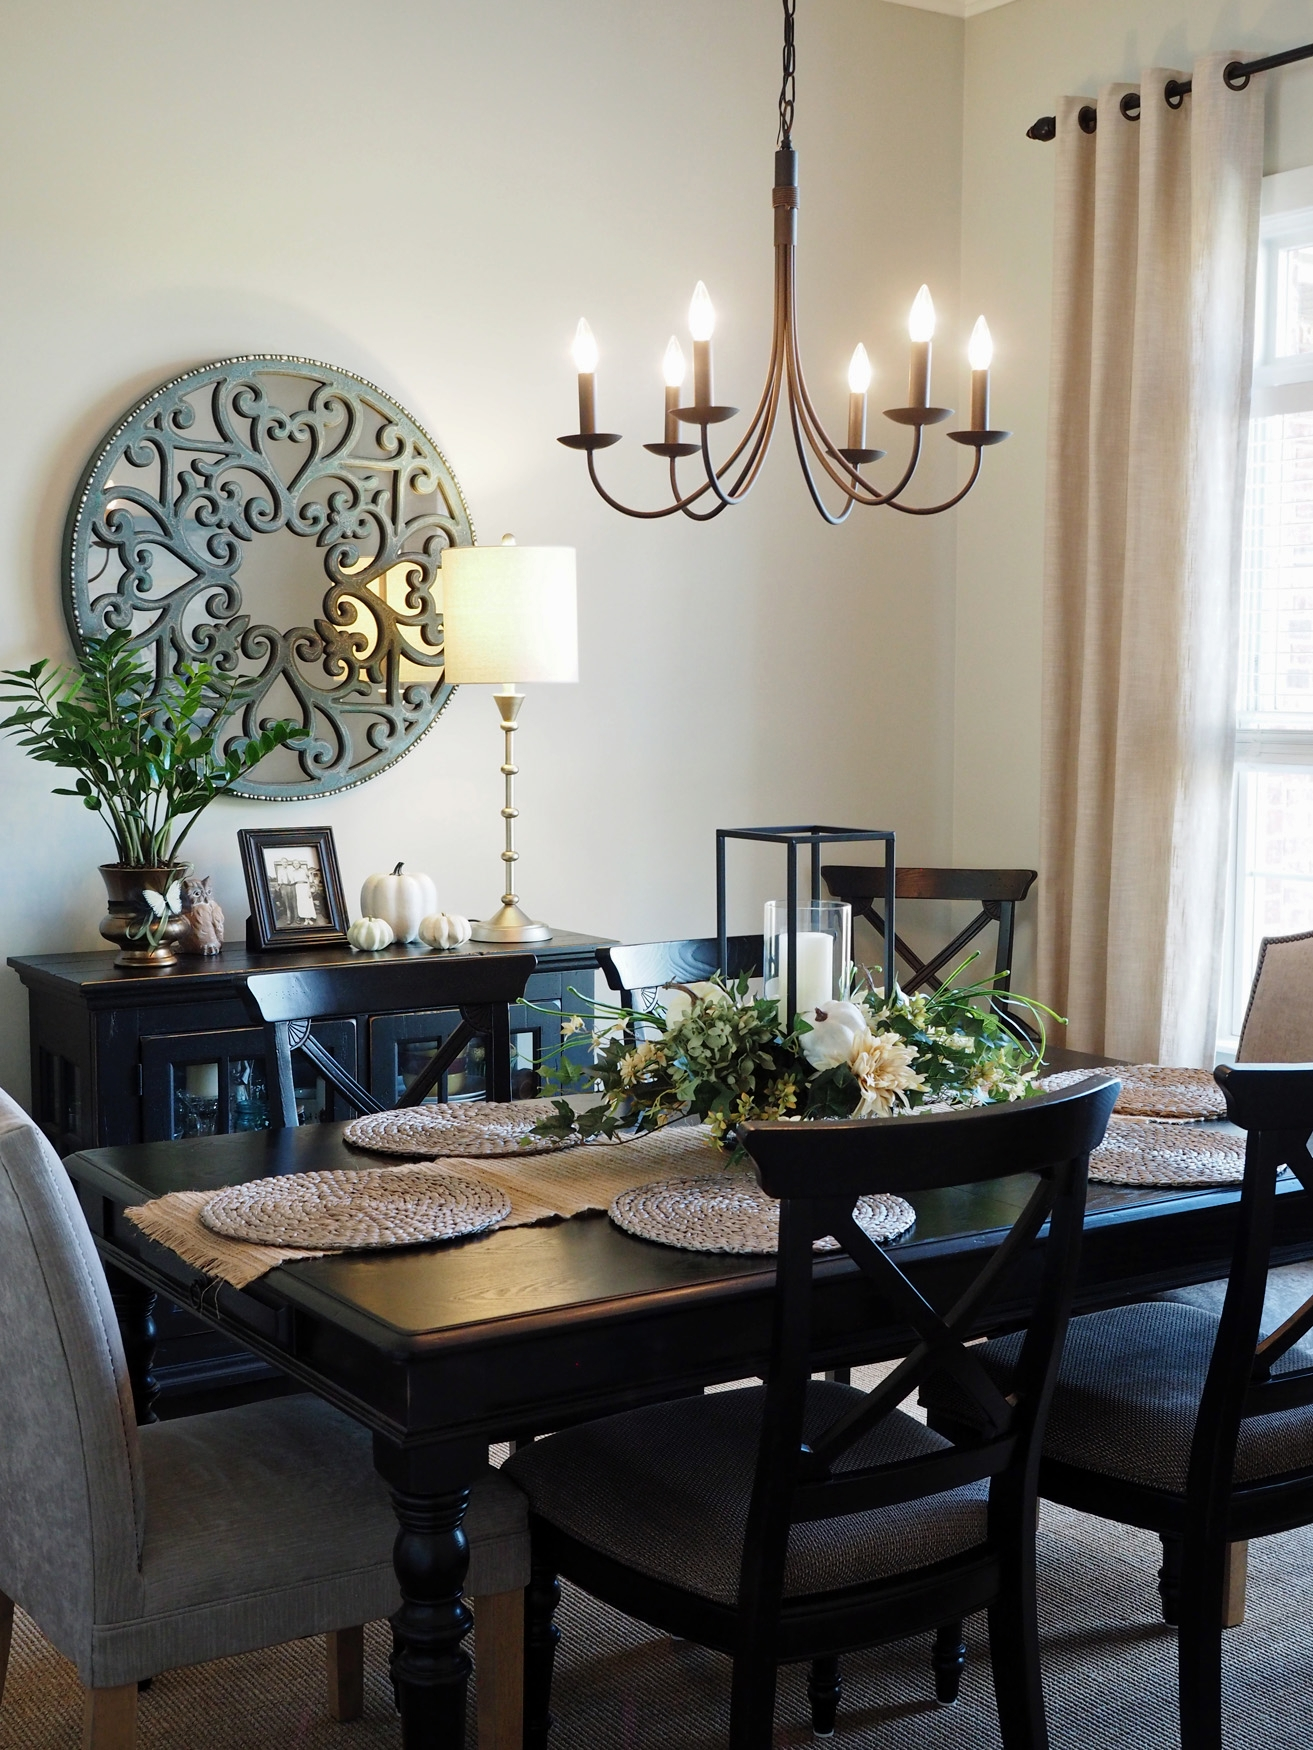 The formal dining room has maintained a fresh, neutral style for fall with bright green greenery and white pumpkins. Not many sources for this room because the mirror has been discontinued from Pier 1 Imports and the table and chairs are older and were purchased locally. The lamp is from Home Goods and the curtain panels are from  Pier 1 Imports .